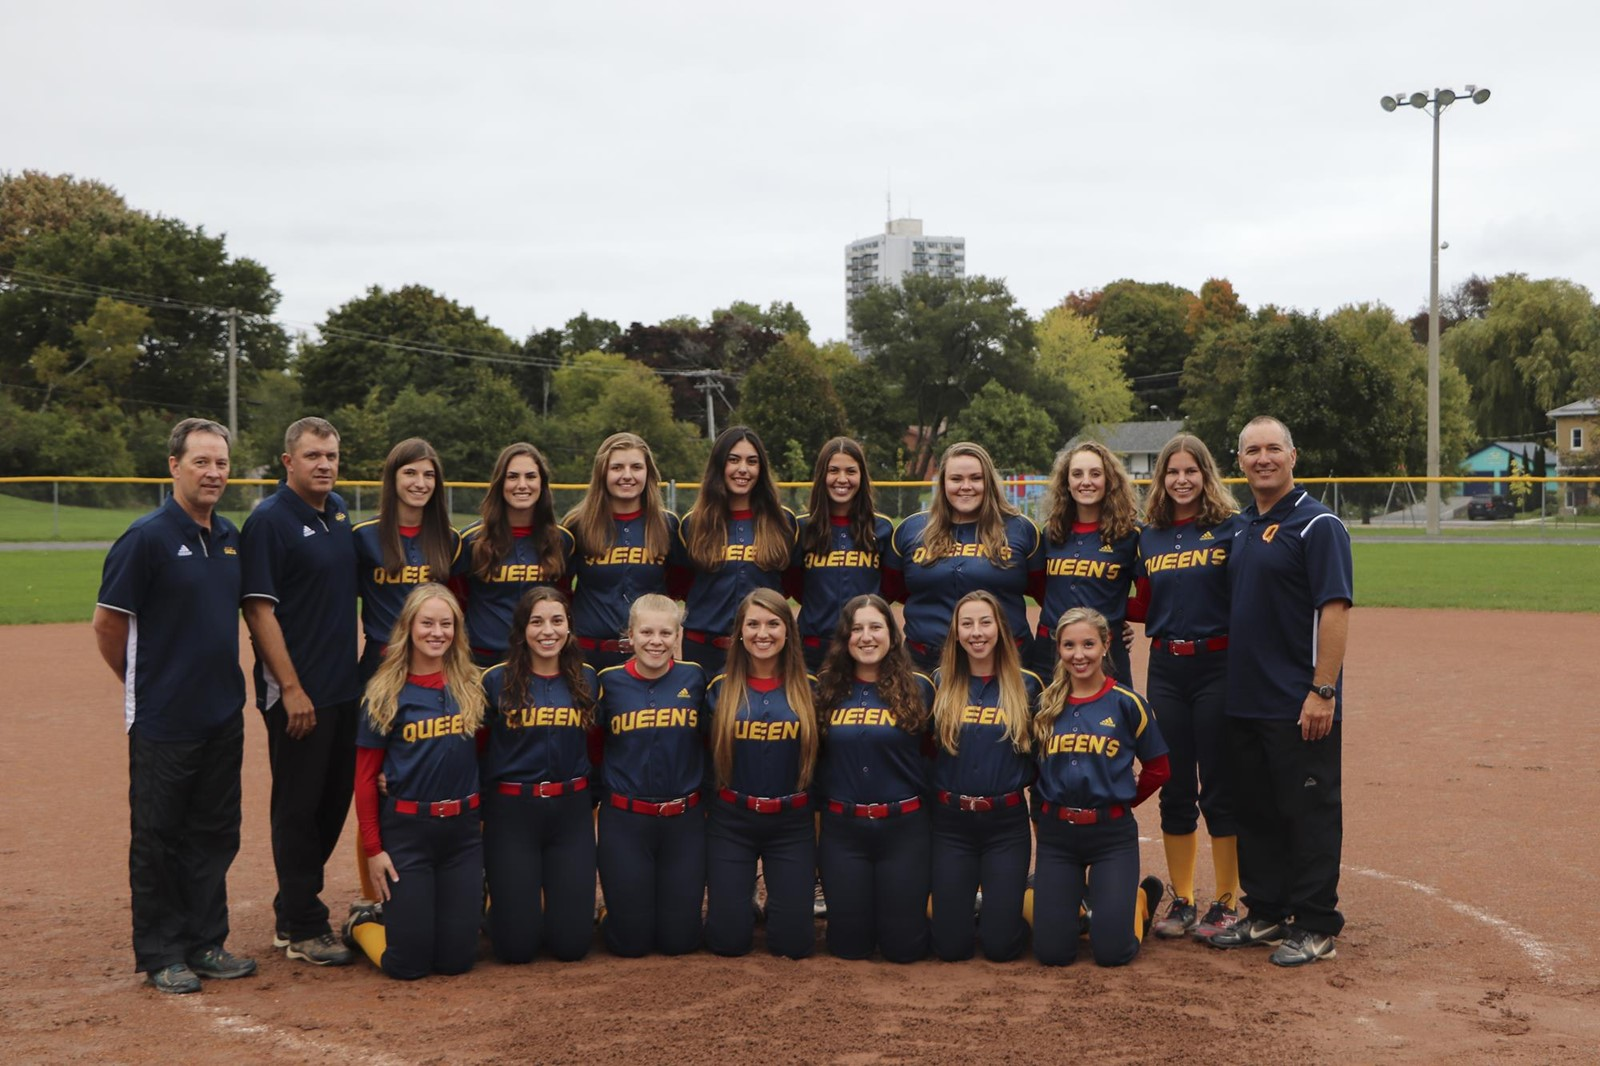 2018-2019 Fastpitch (W) Roster - Queen's University Athletics